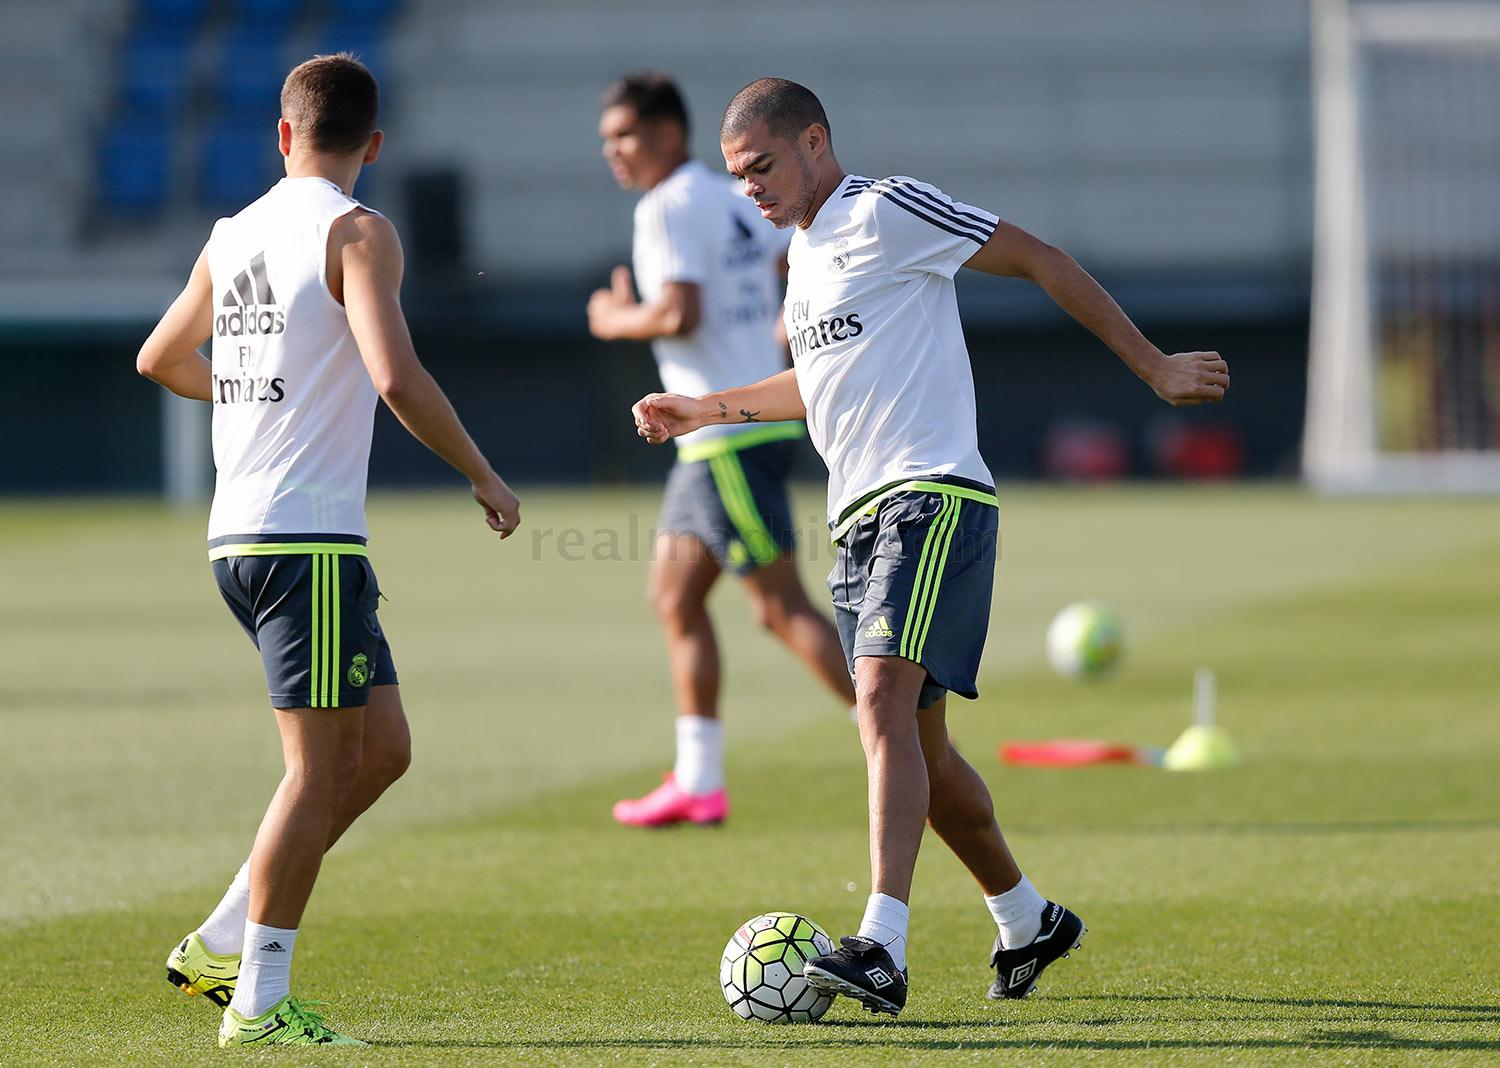 Real Madrid - Entrenamiento del Real Madrid - 20-08-2015